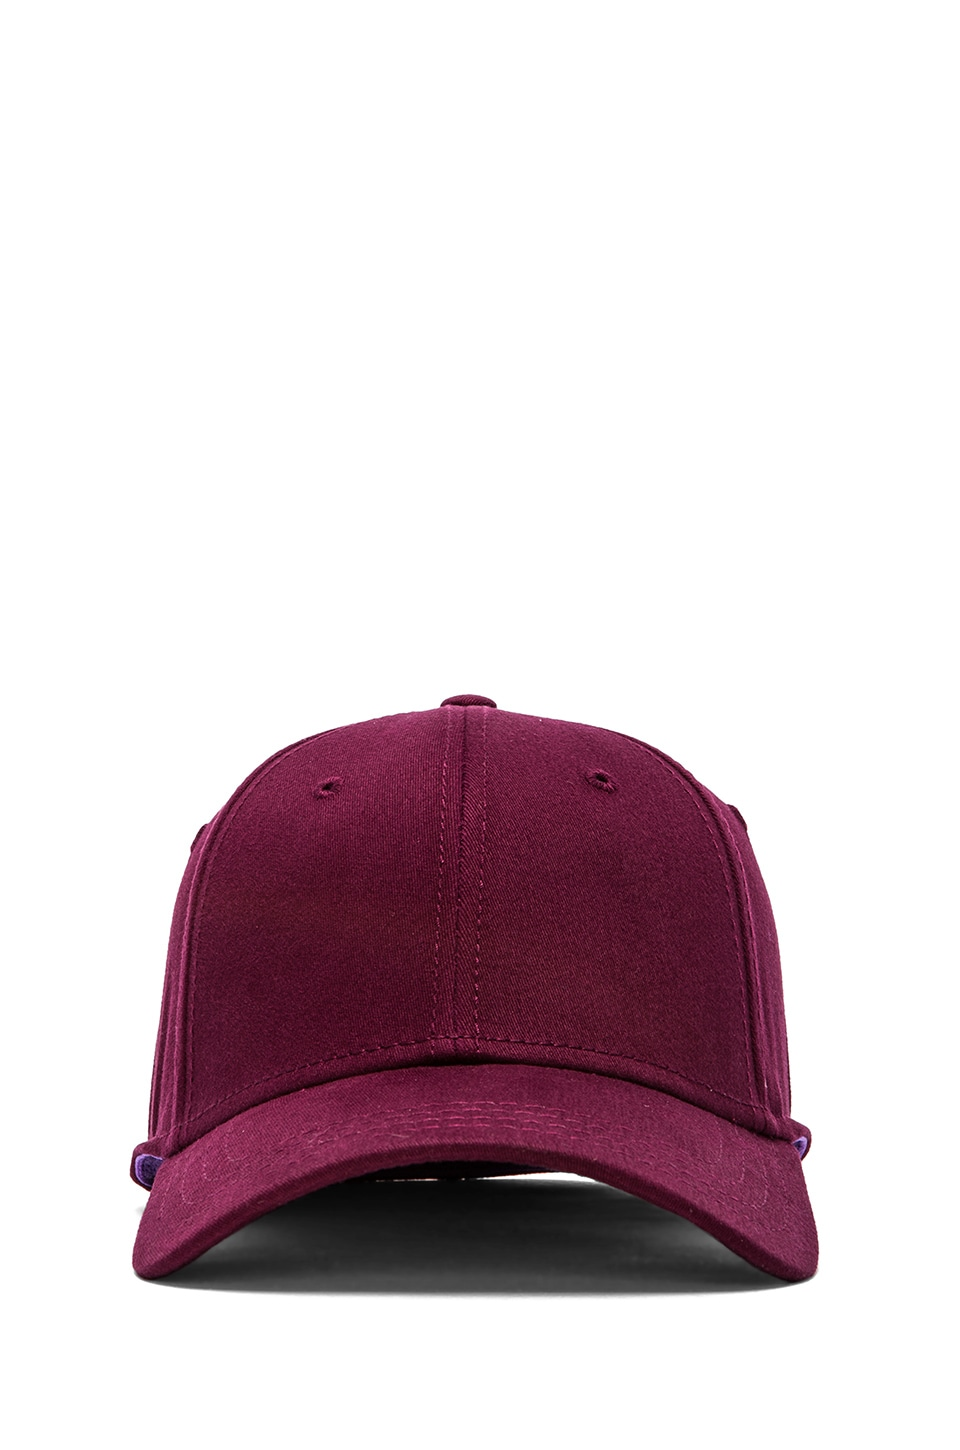 Gents Co. Director's Cap in Maroon